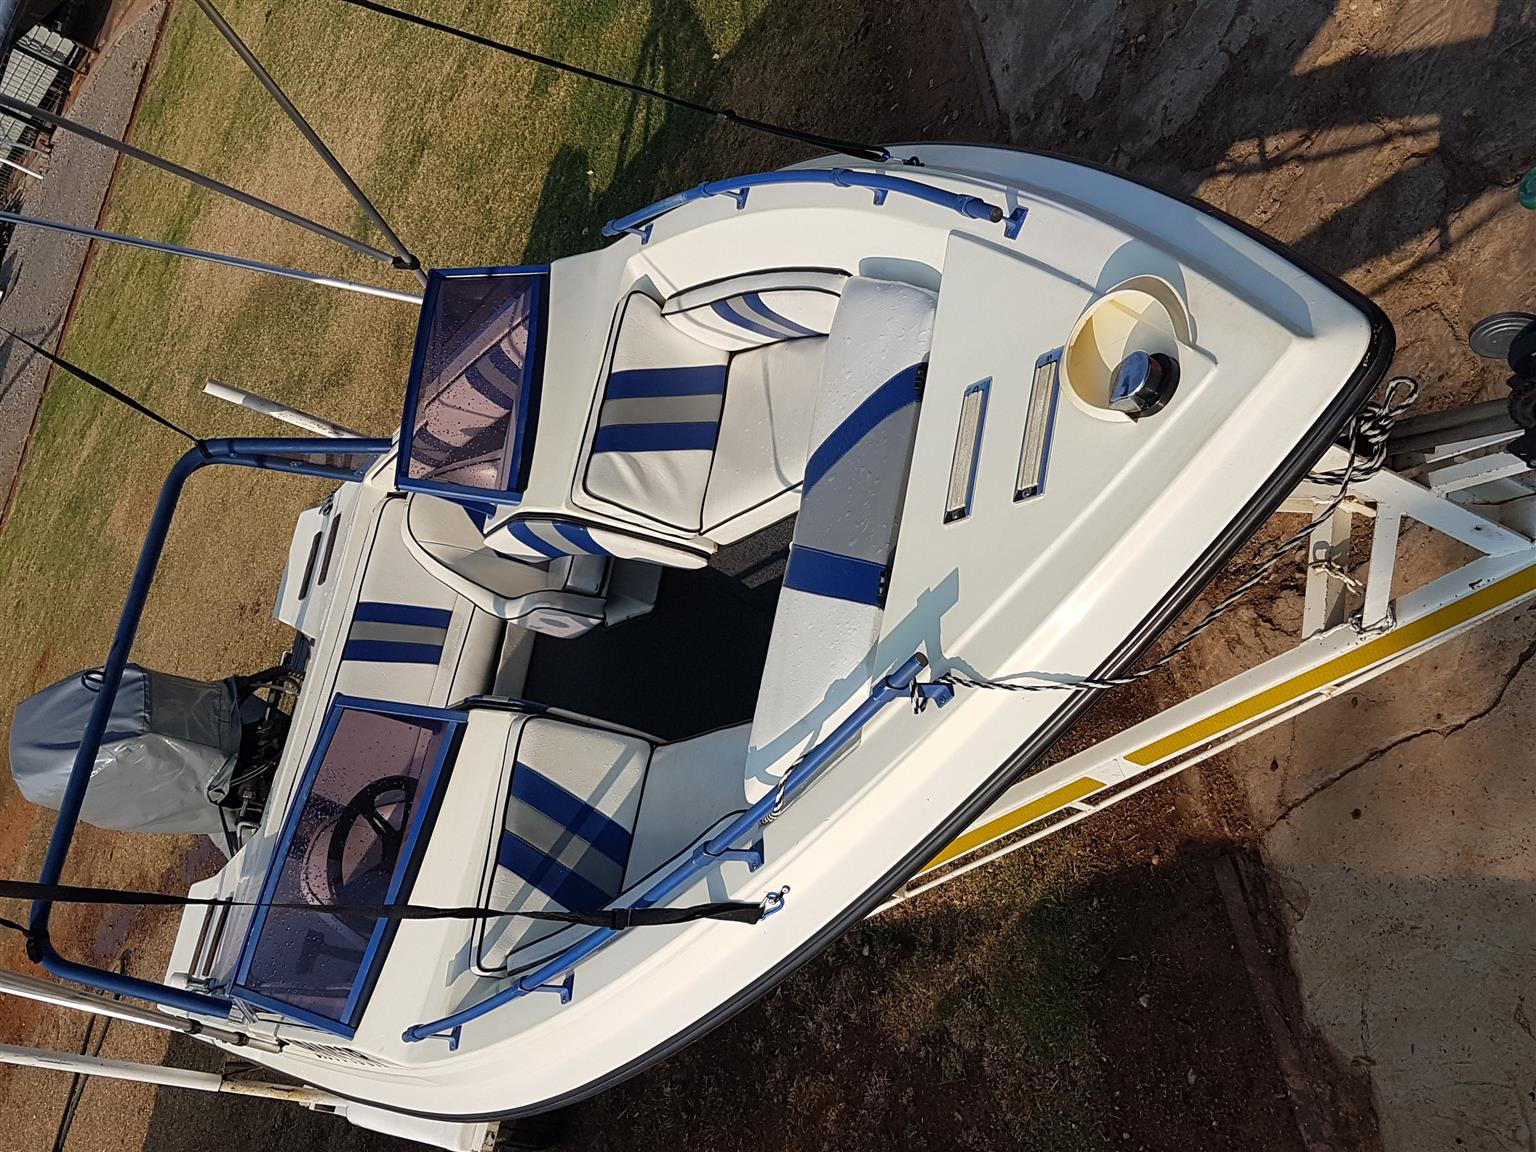 BOWRIDER TOBAGO with 150hp EVINRUDE - MINT ORIGINAL!! PRICE REDUCED!!